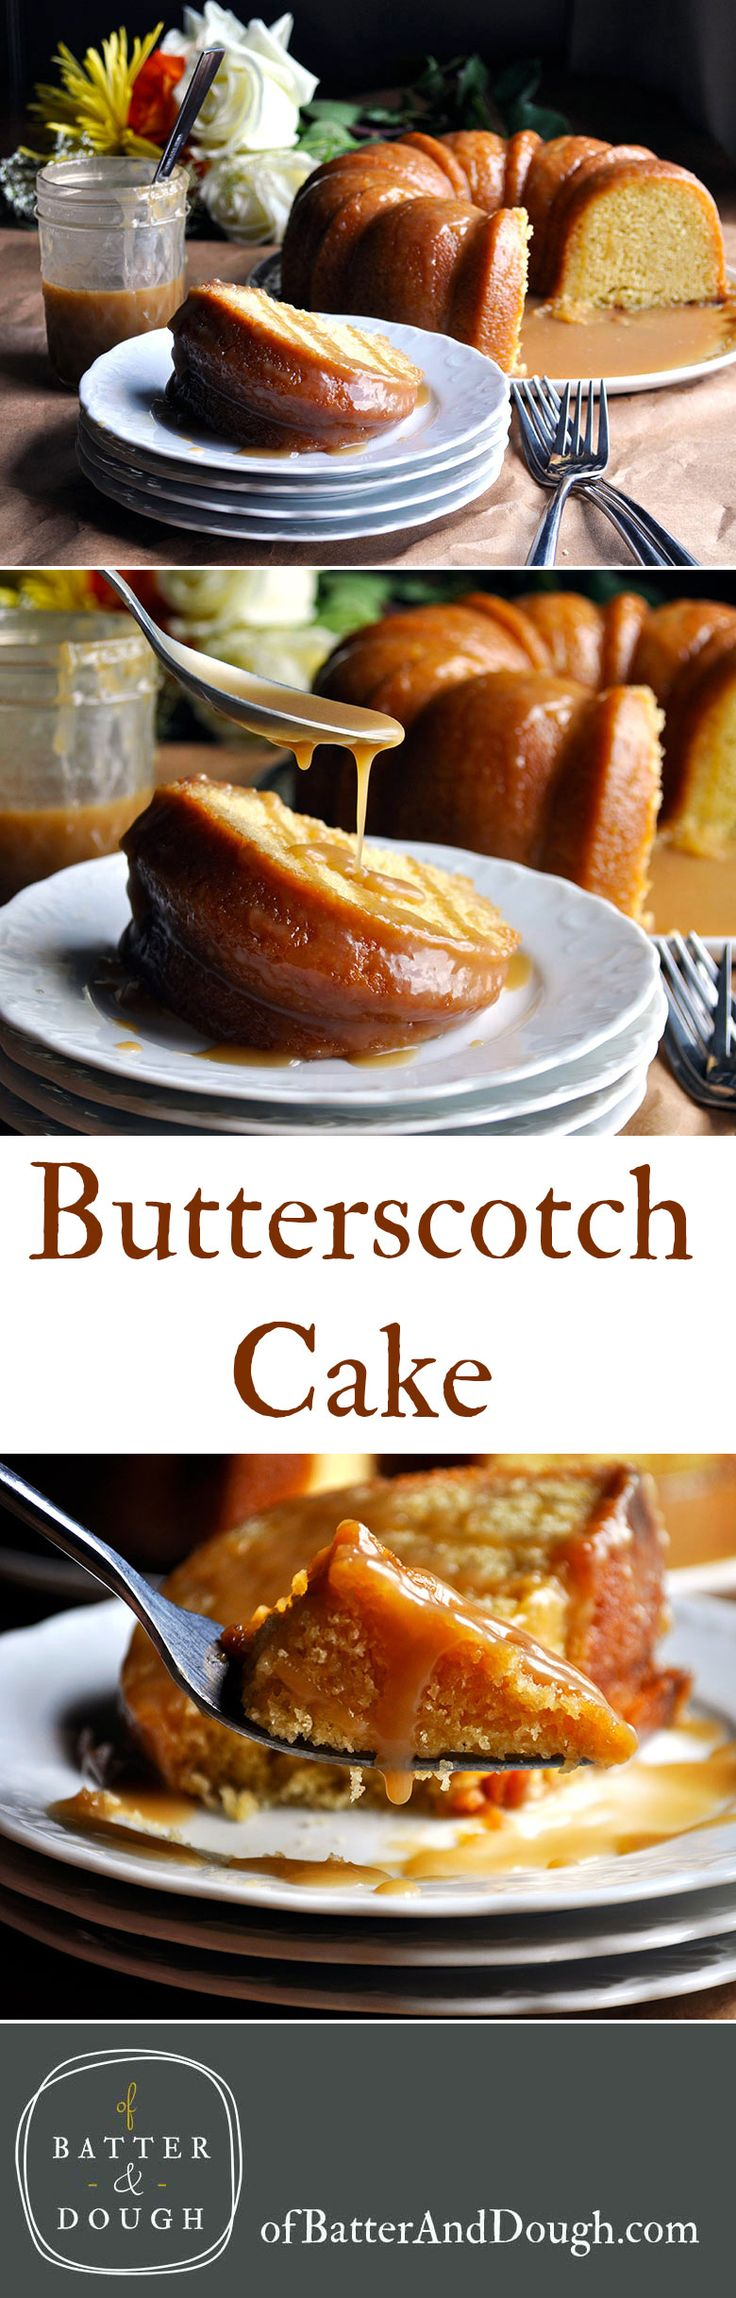 Butterscotch Bundt Cake. Tender, moist, buttery bundt cake coated in a thick layer of homemade butterscotch sauce.